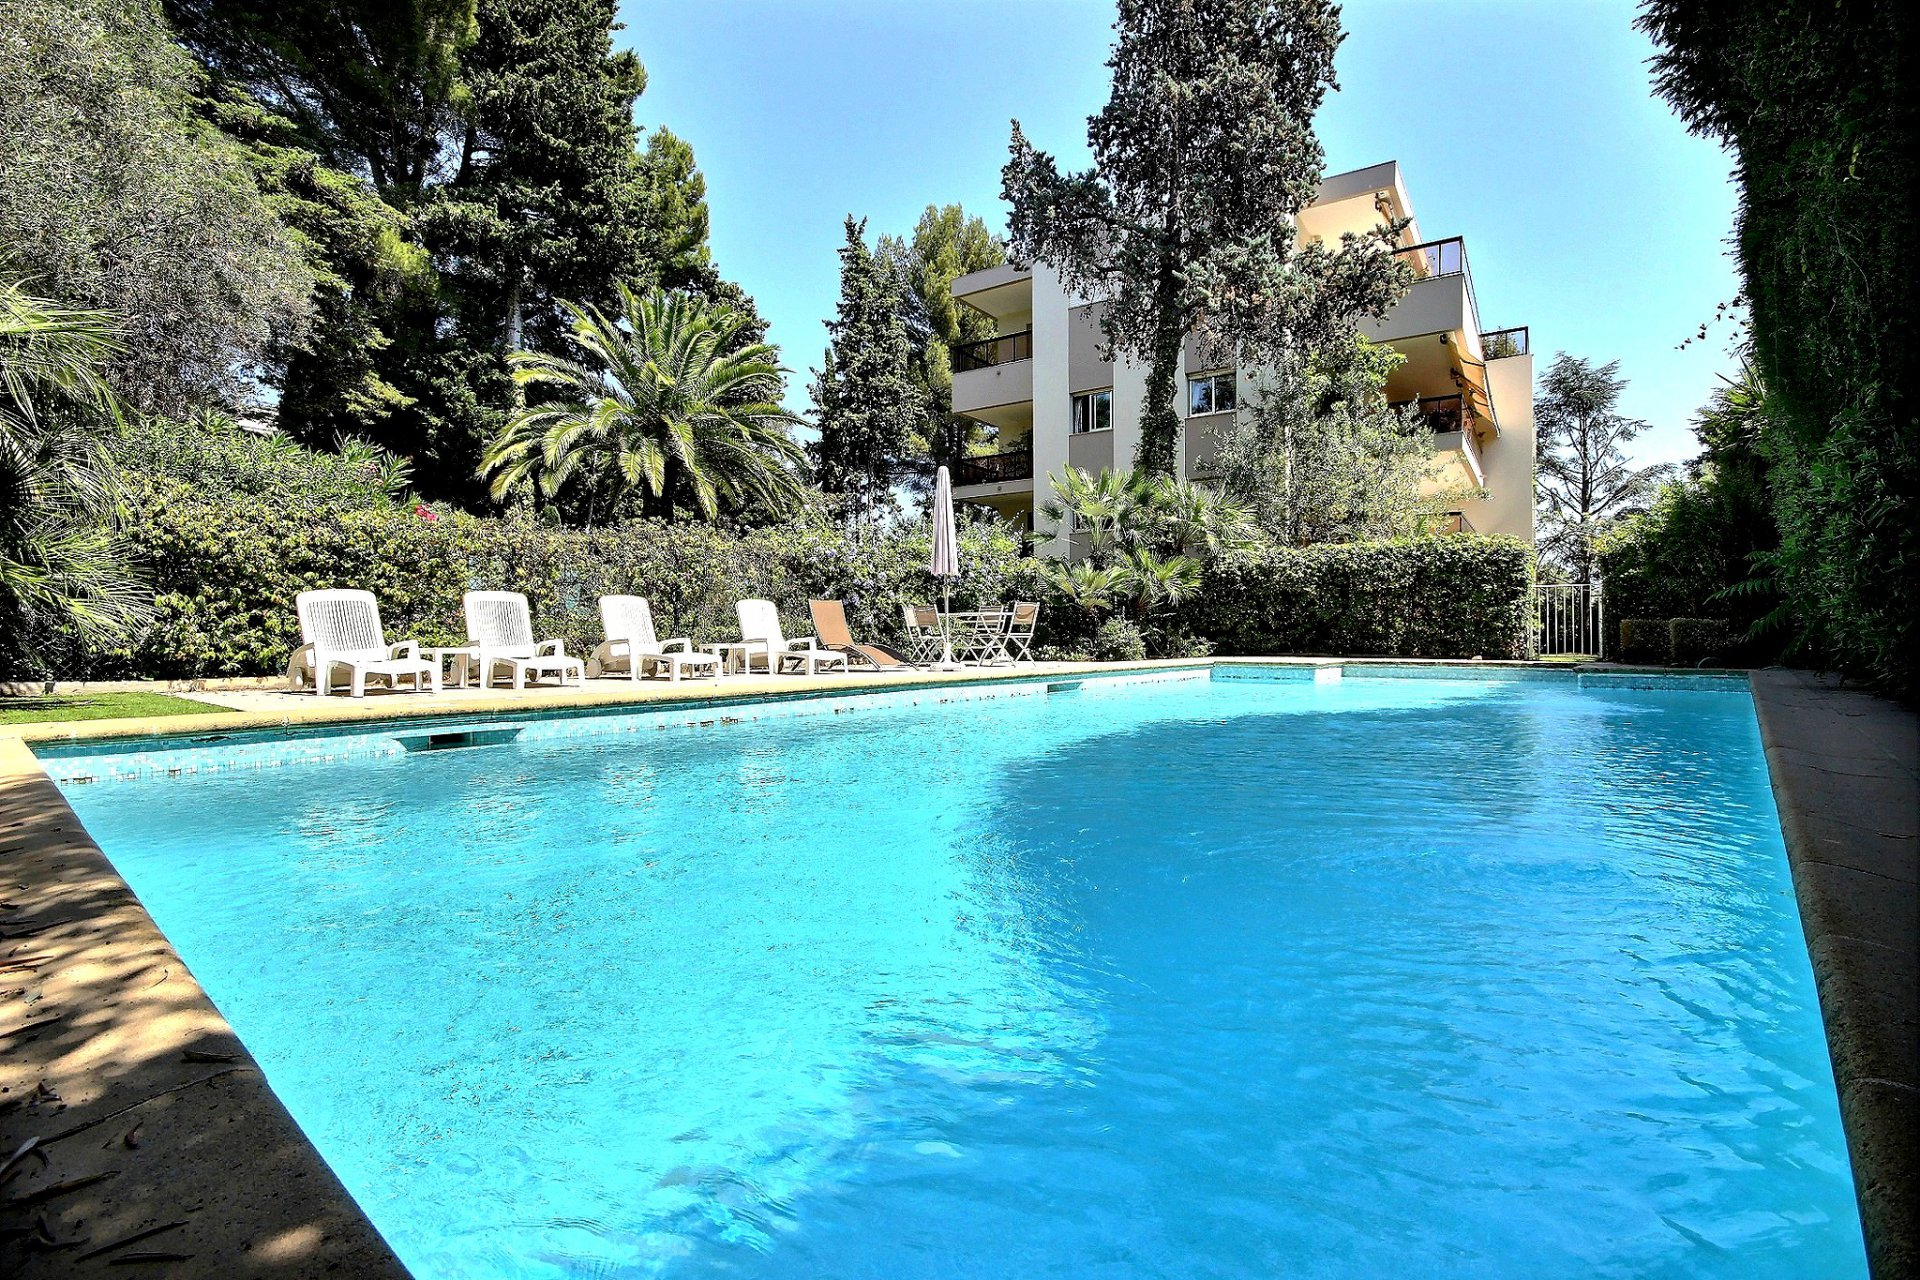 Property for sale in Cannes Californie with swimming pool